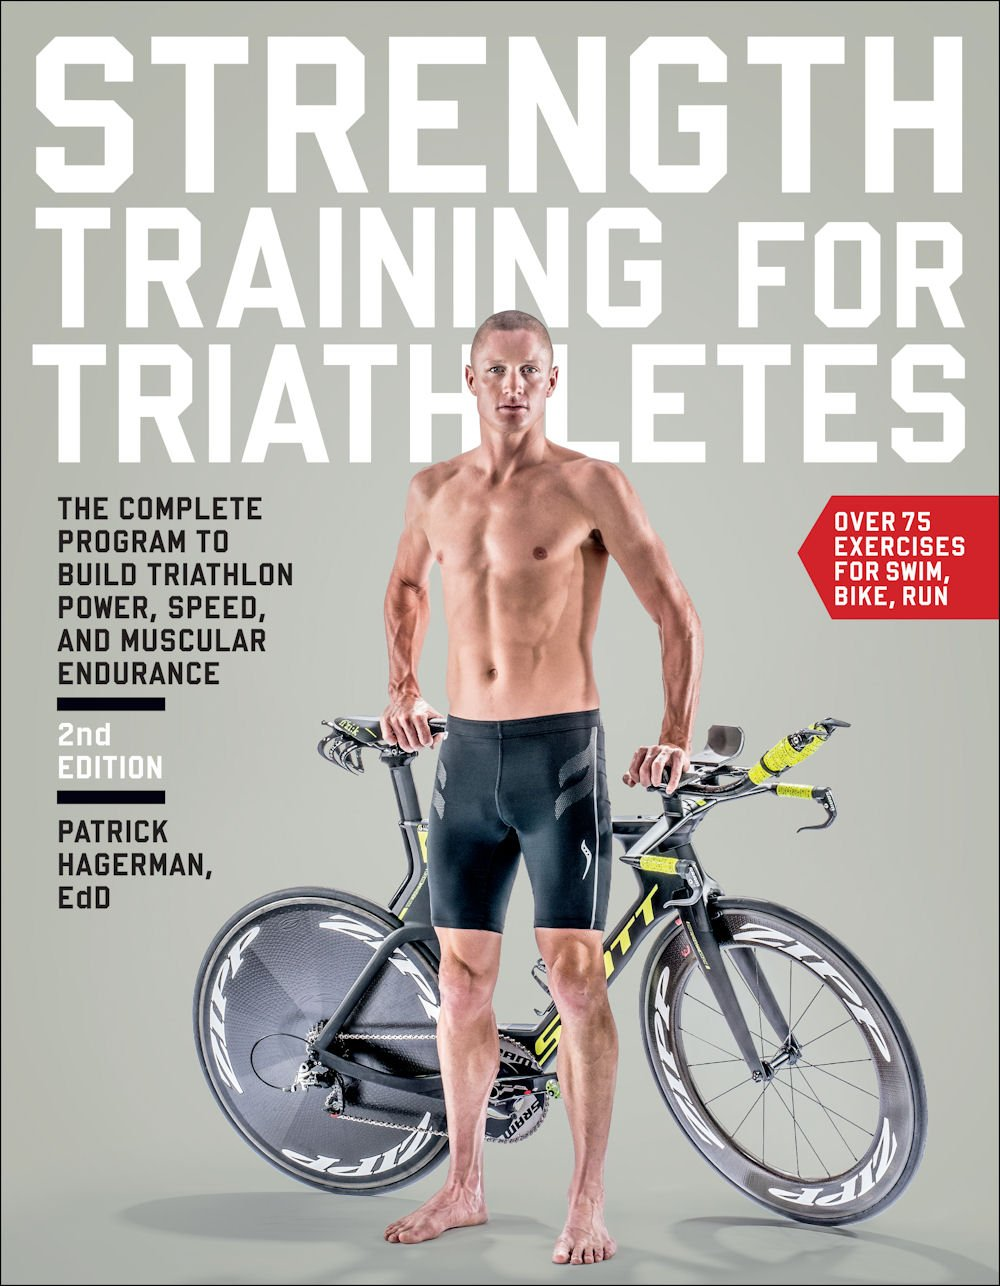 strength-training-for-triathletes-the-complete-program-to-build-triathlon-power-speed-and-muscular-endurance